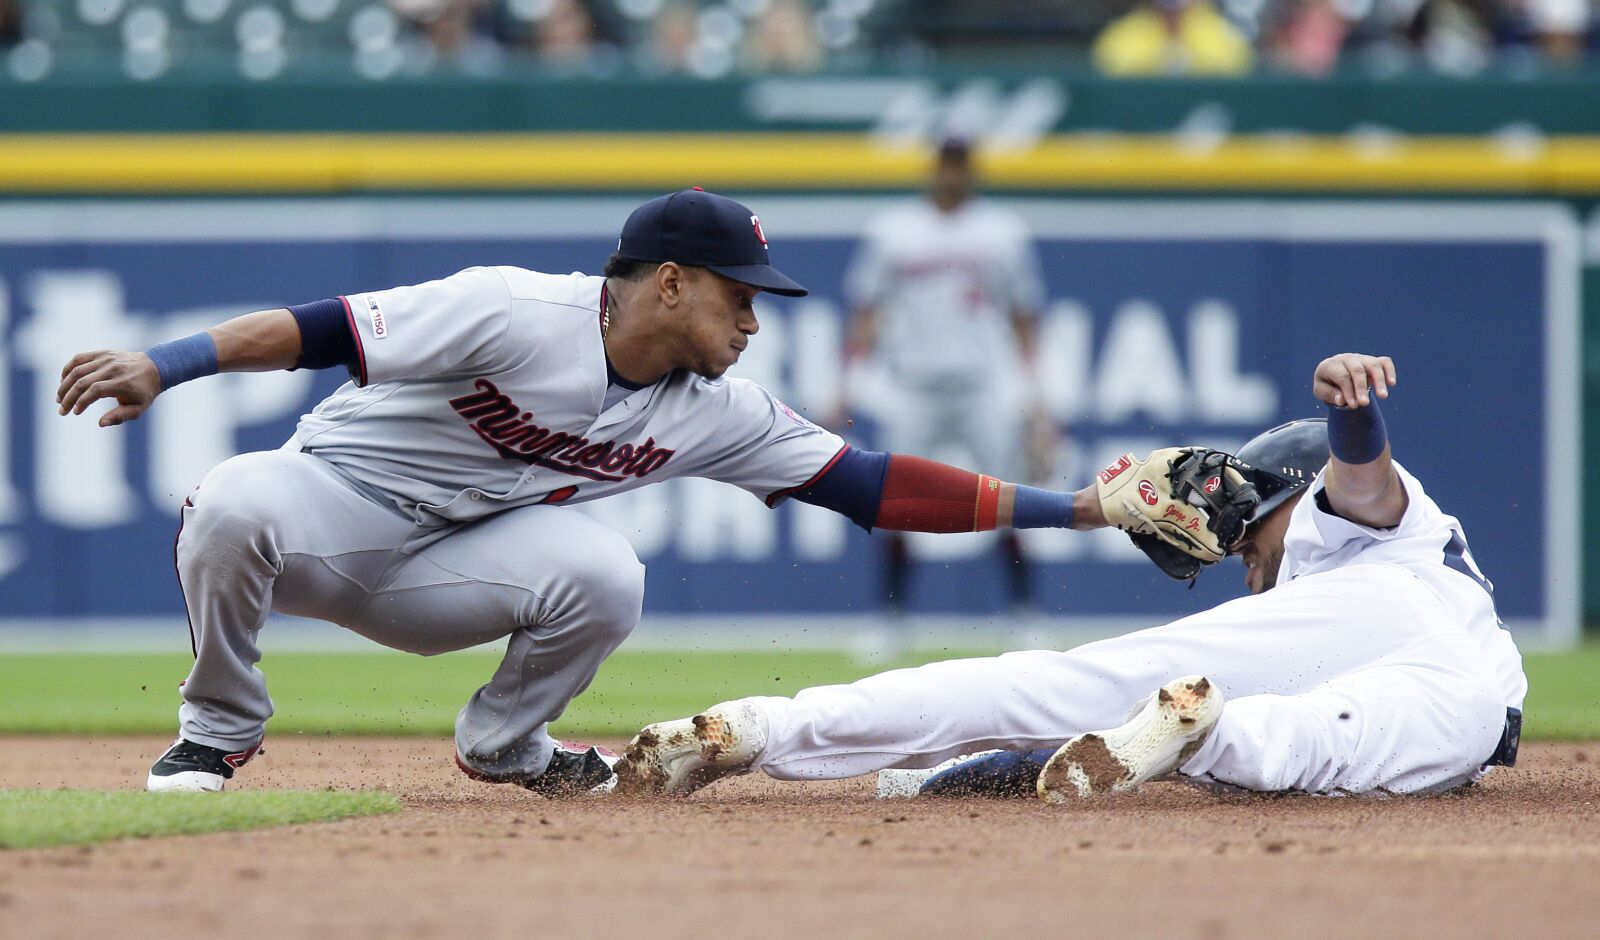 Minnesota Twins: Twins extend lead in AL Central with win over Tigers